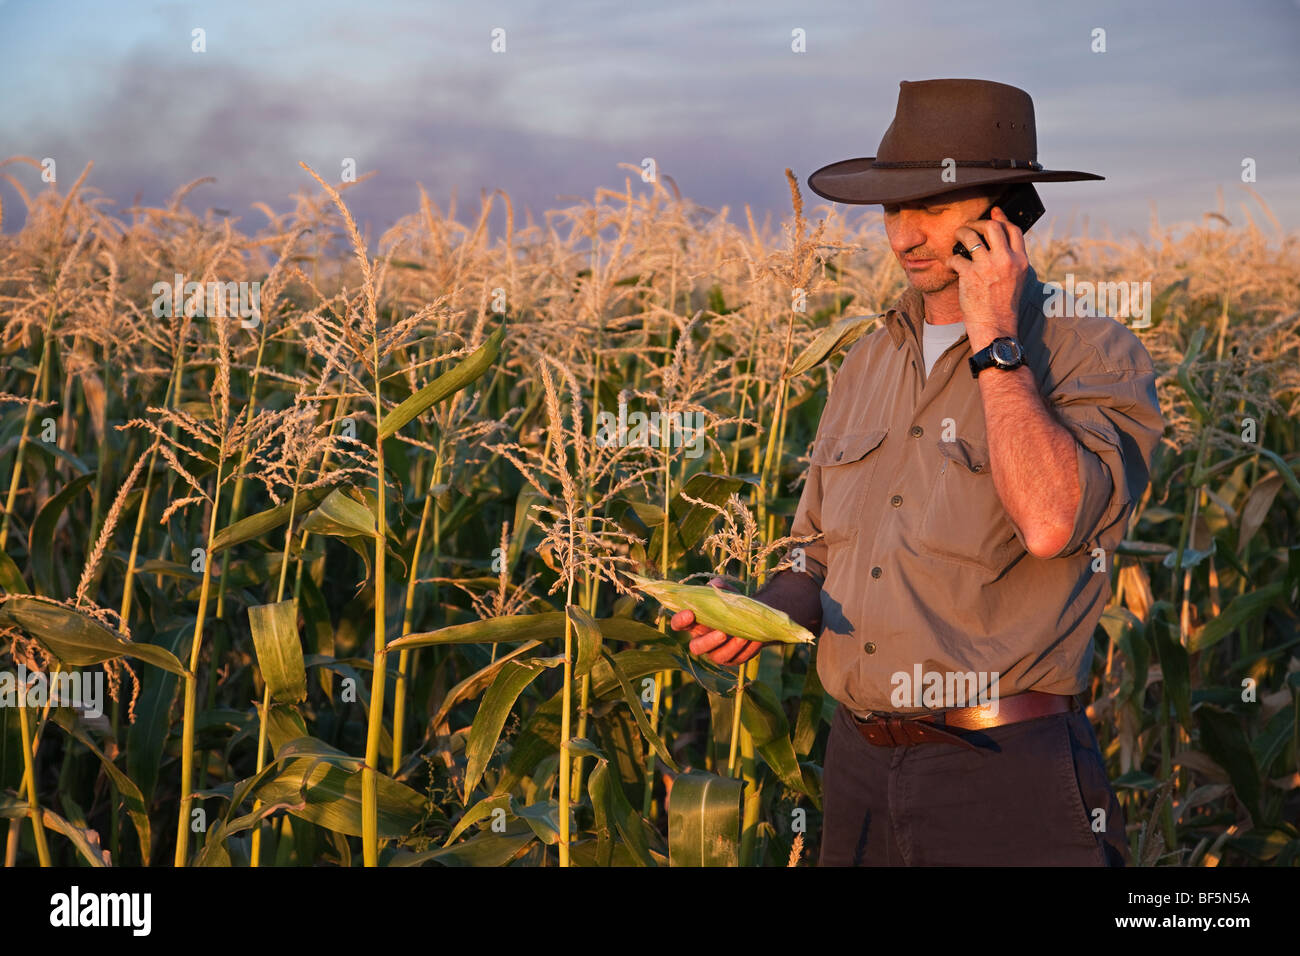 Farmer checking on his miele crop in the field - Stock Image